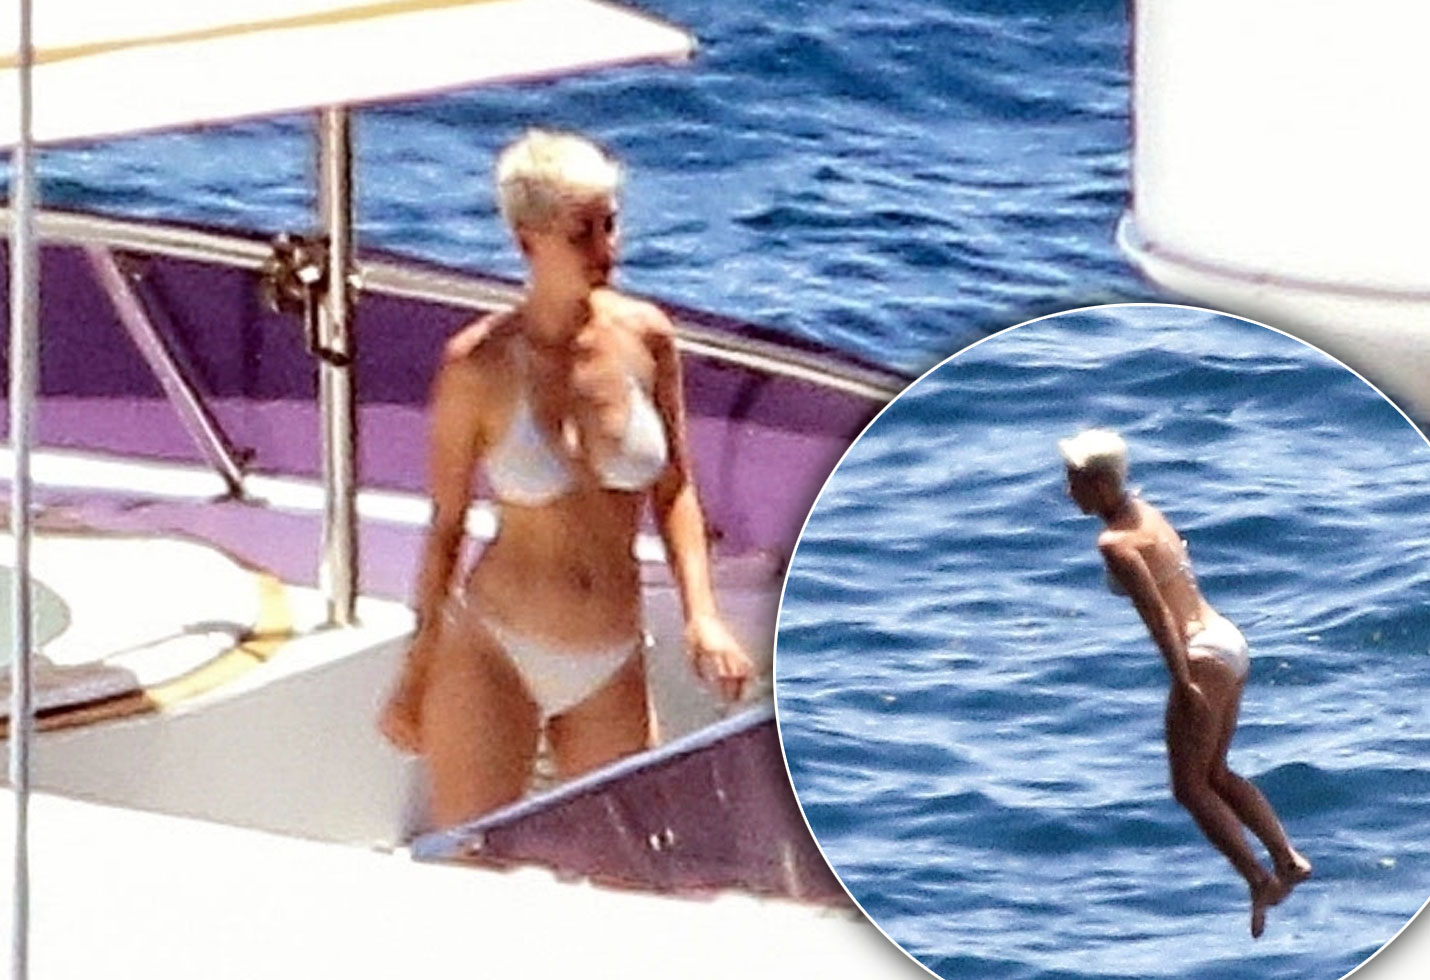 Katy Perry Yacht Bikini Photos